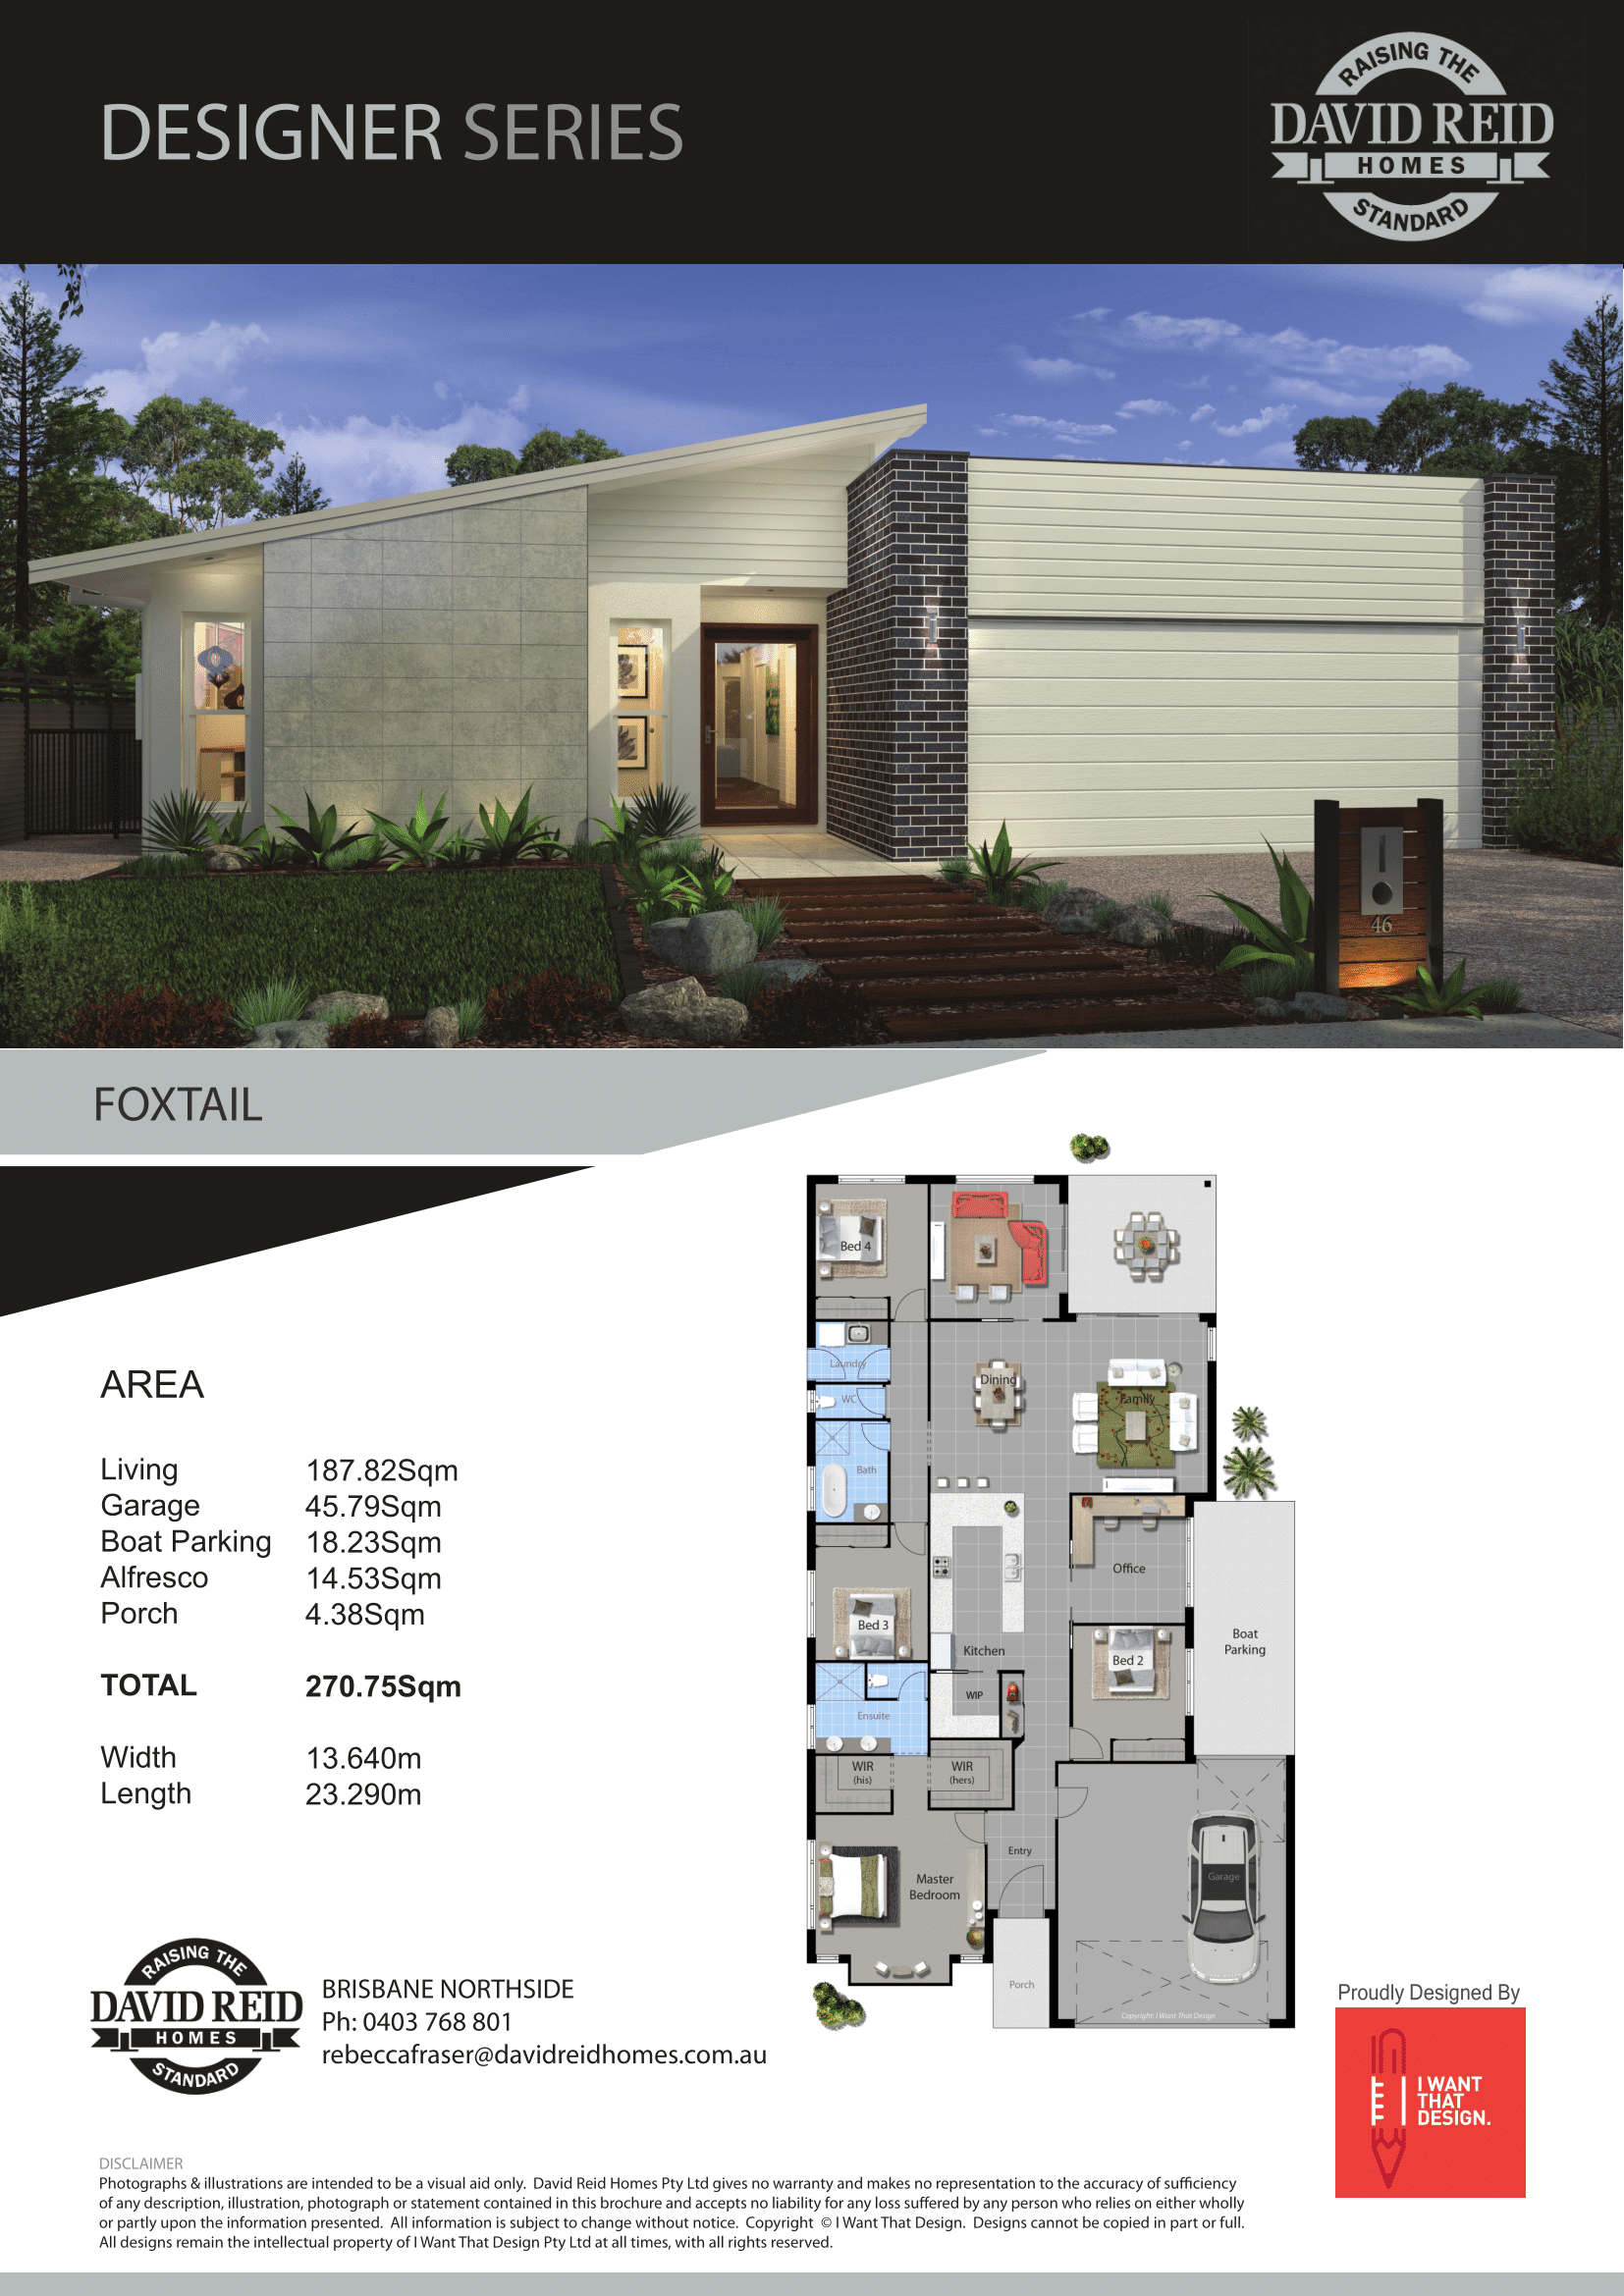 David Reid Homes: Luxury Display Homes View Our Quality Australia Wide